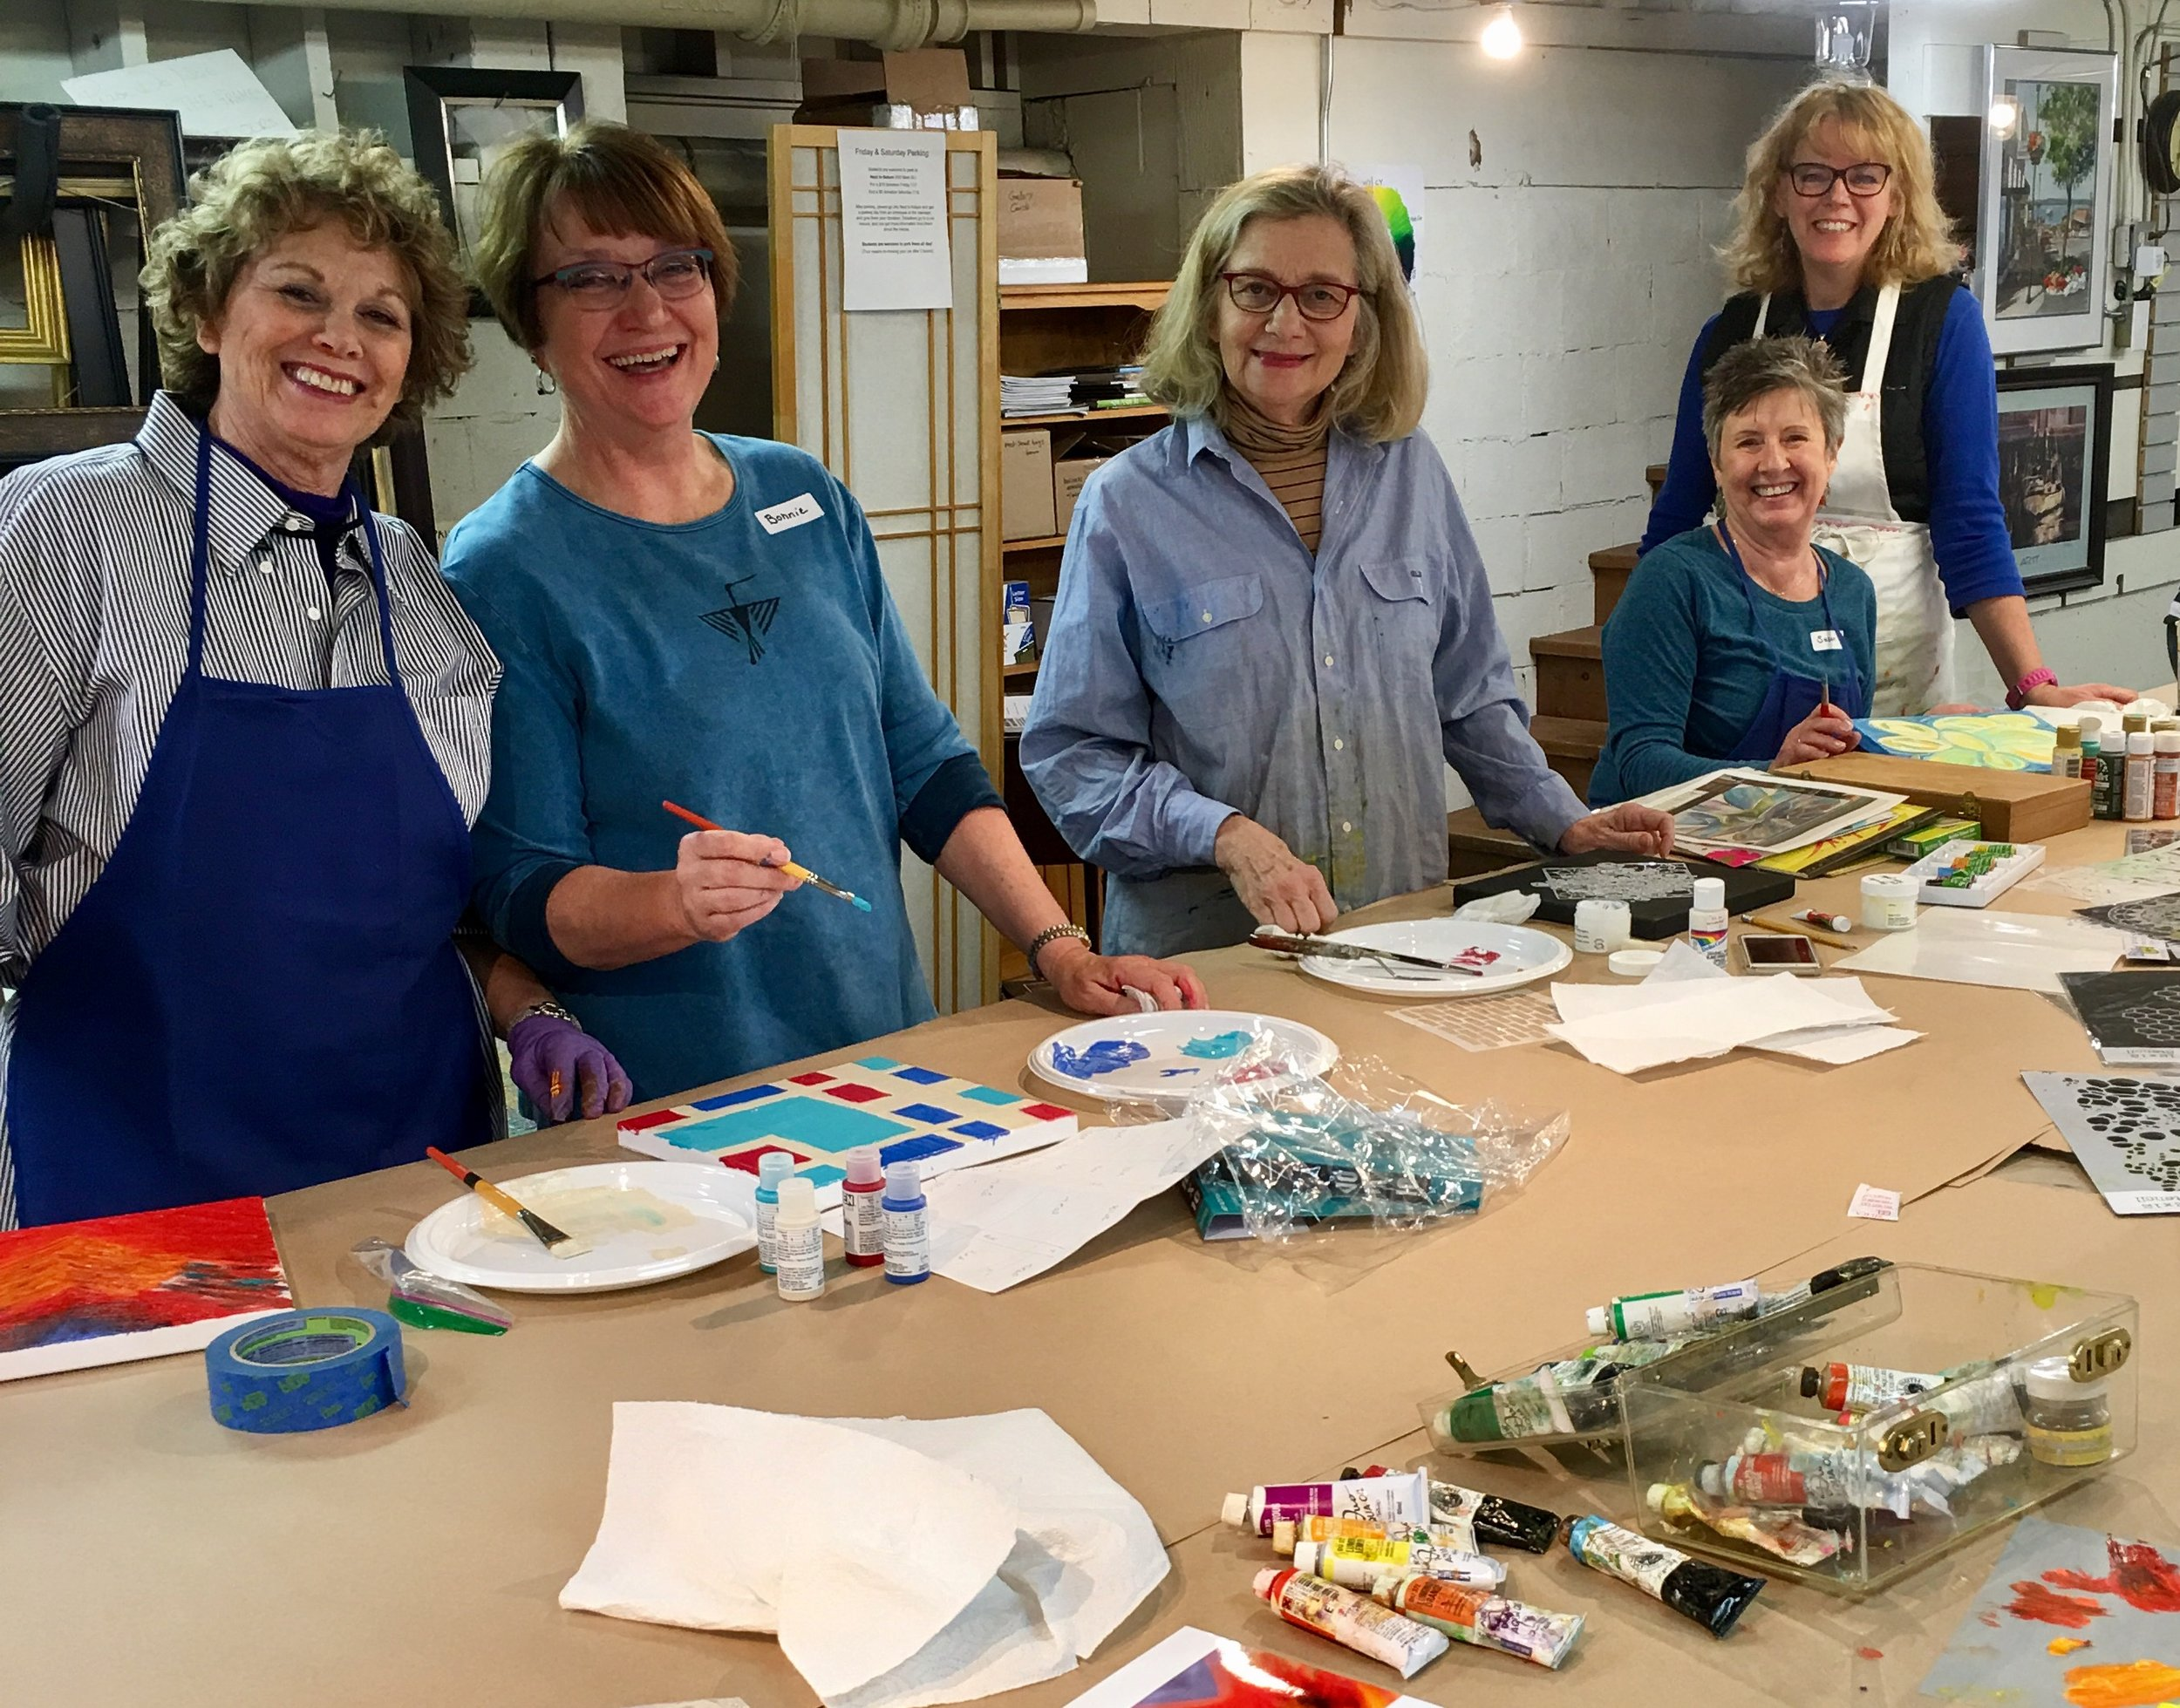 """Look who showed up to paint!.... Tracy Felix (far right) with members of the board from Washington Kids in Transition at the 2nd """"Paint-Together session April 11th."""